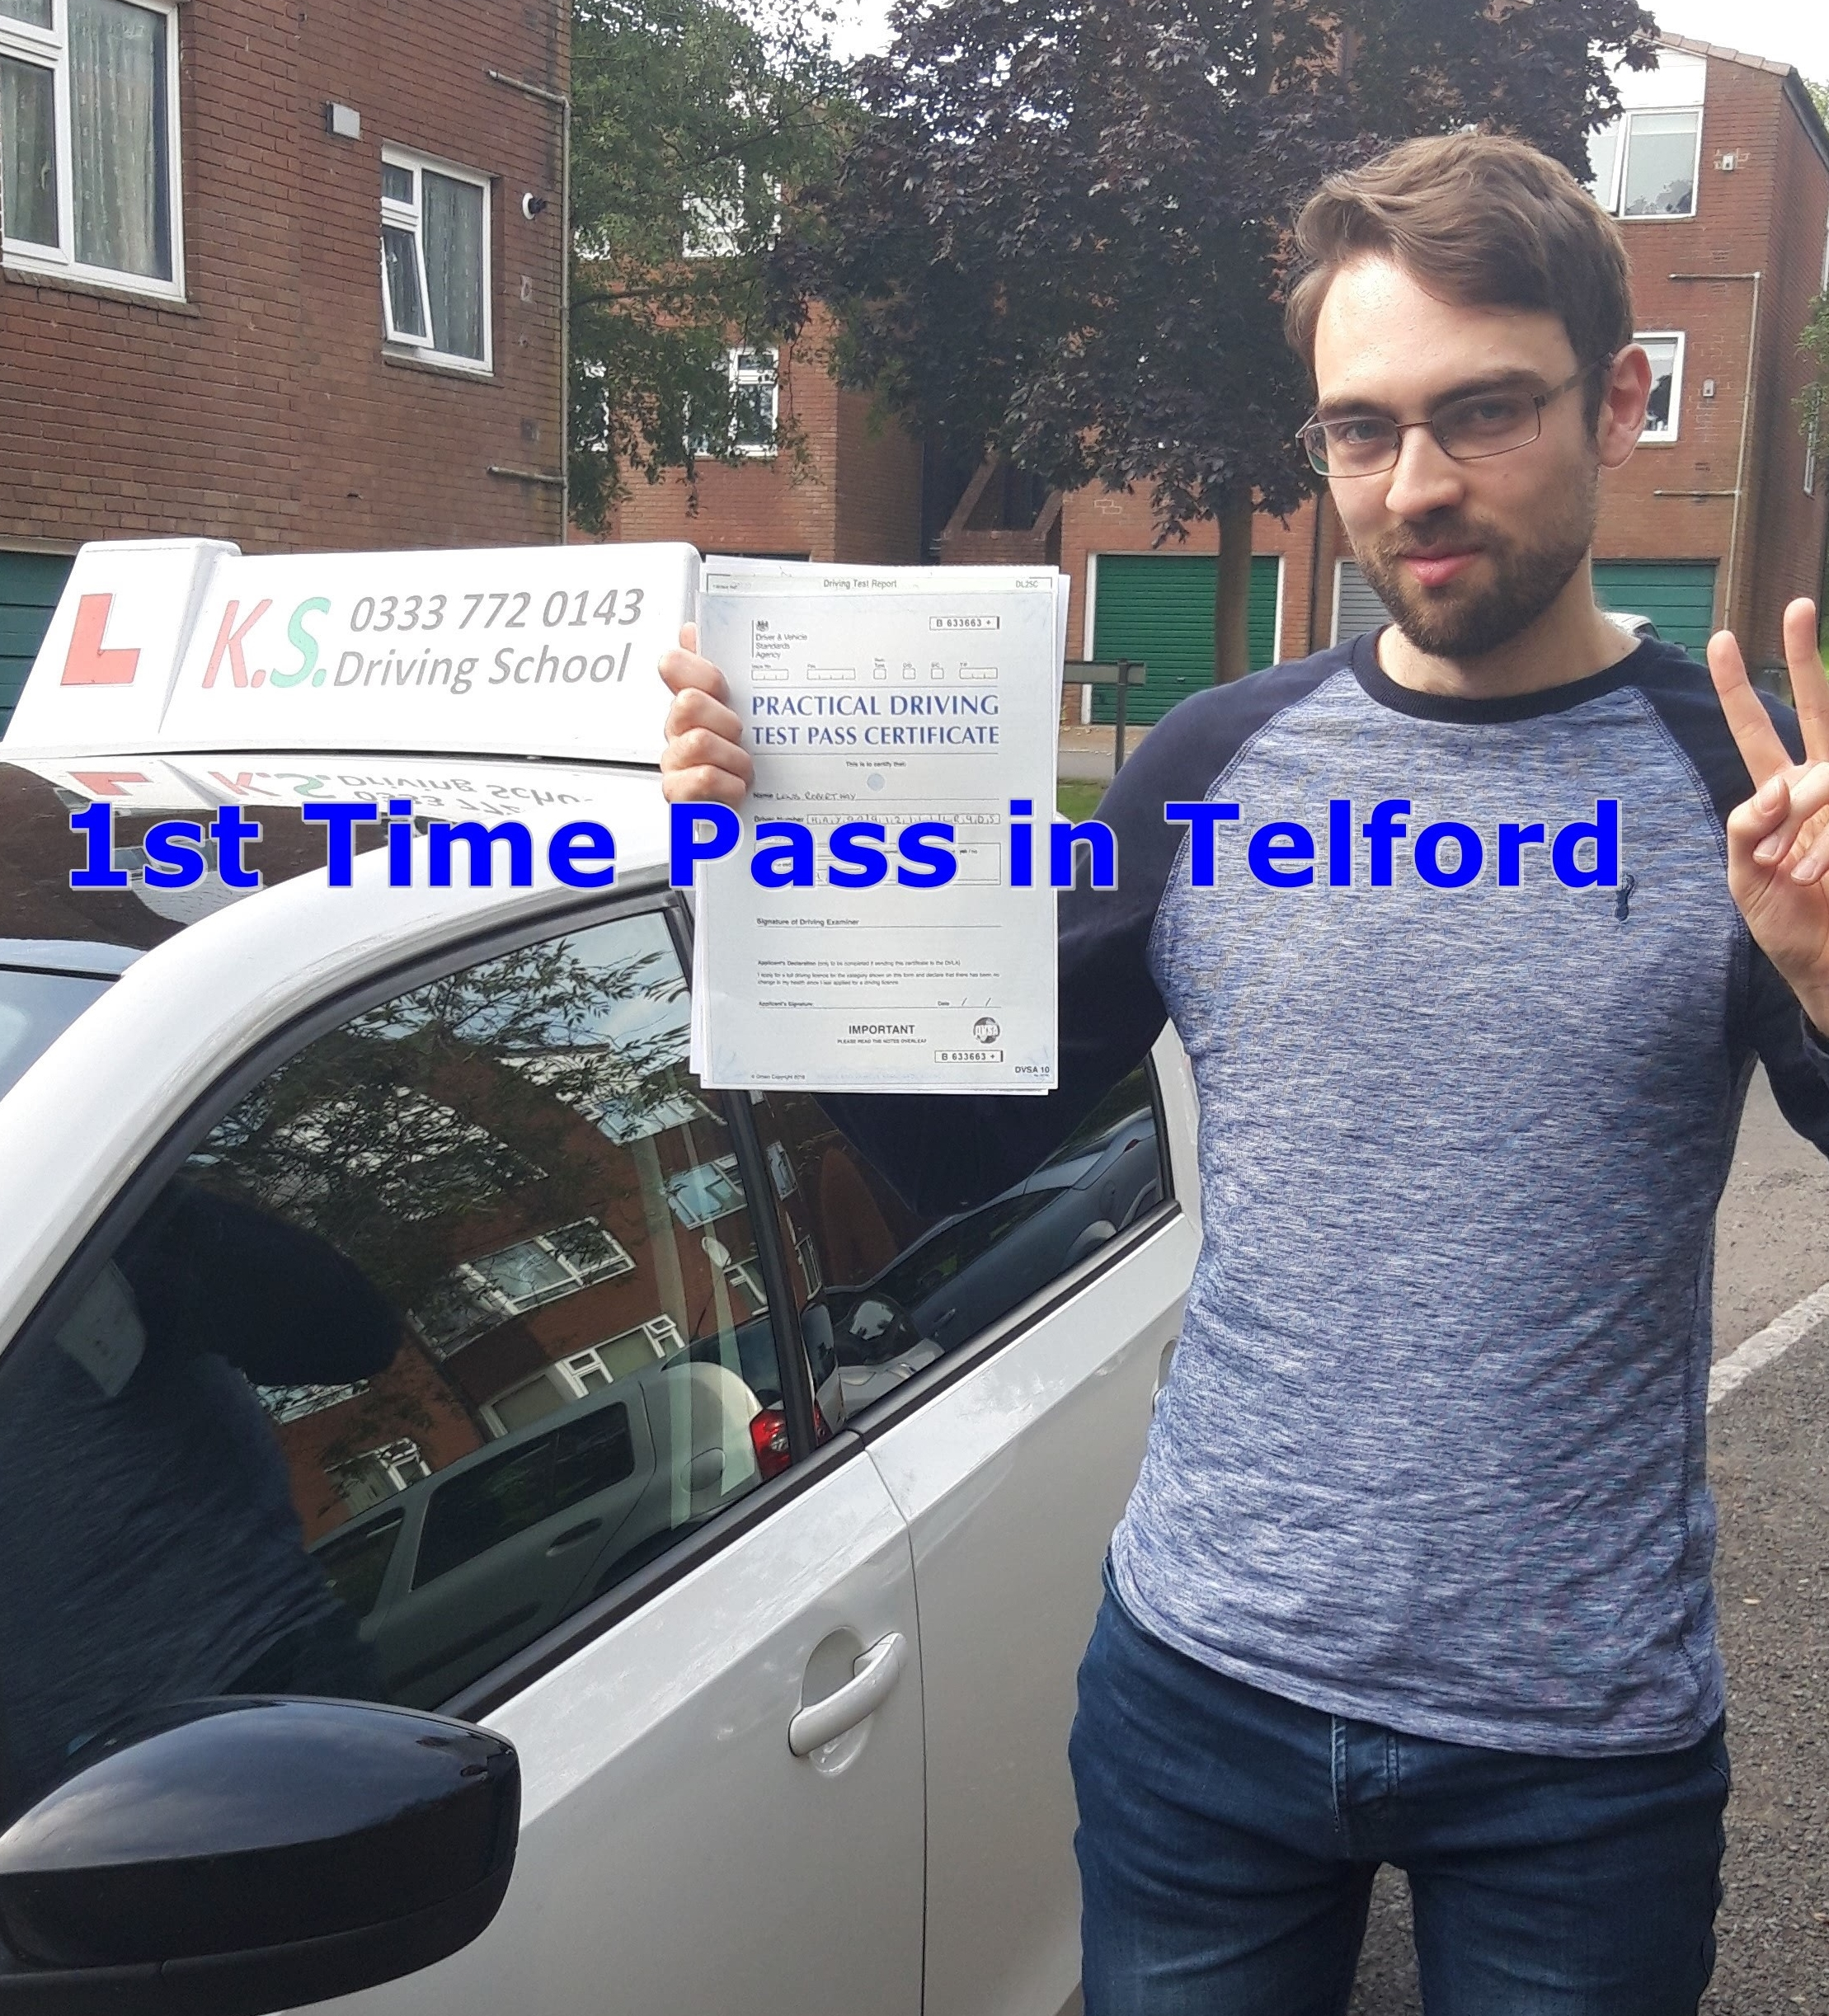 Driving Test Pass in Telford 1st Time